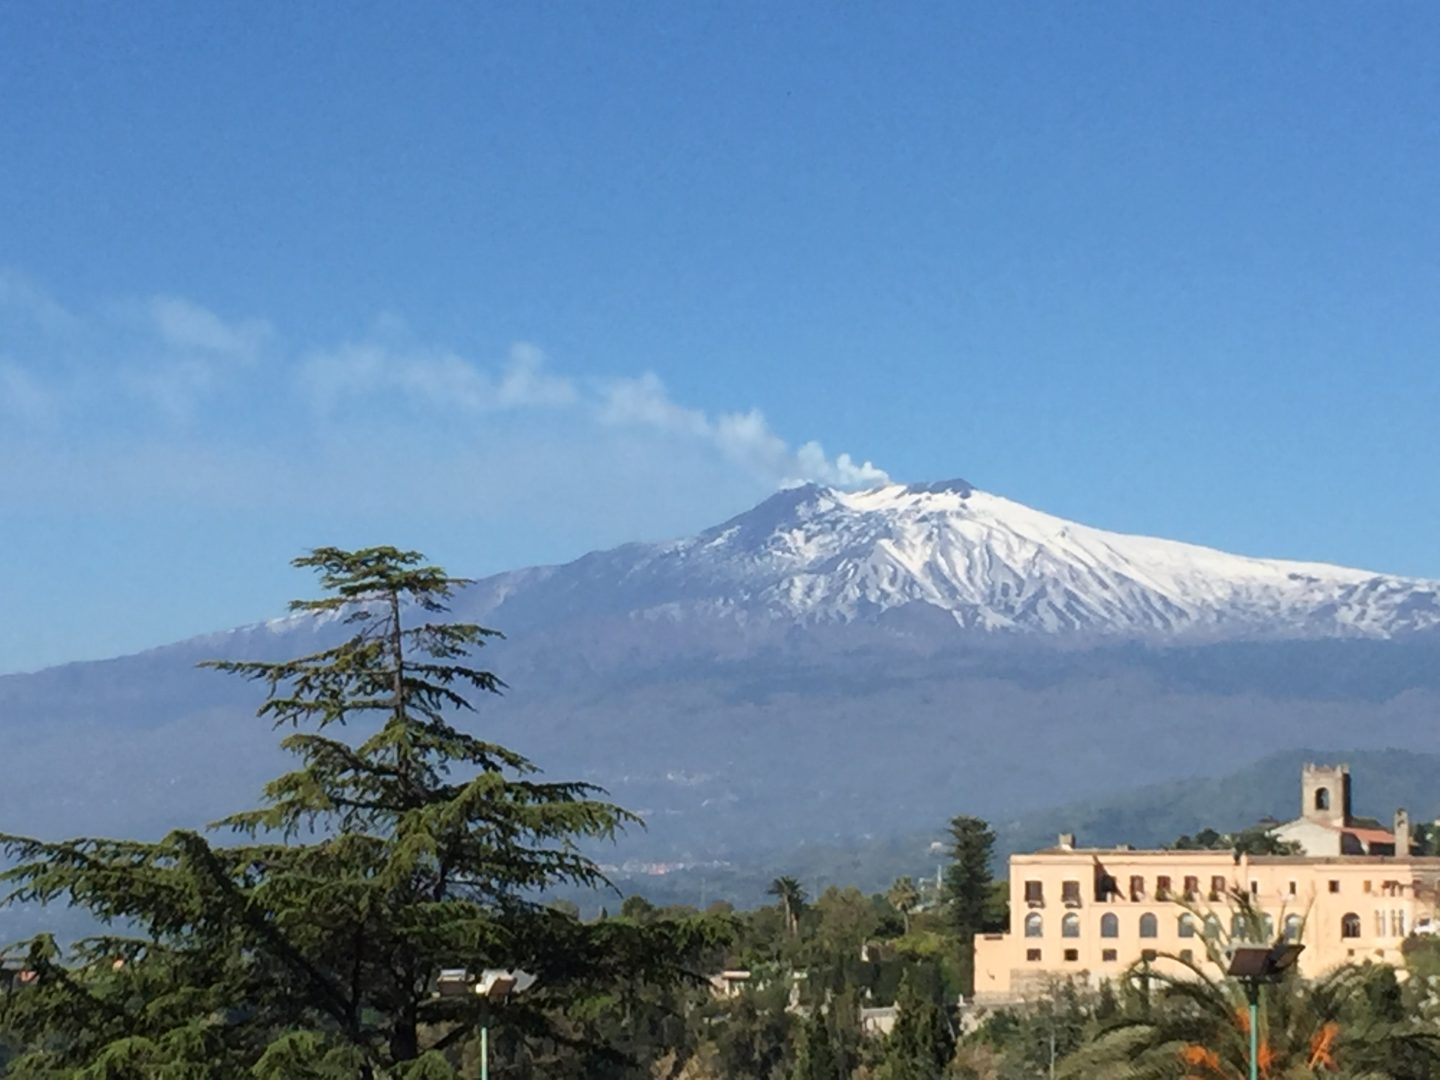 Our guided tour of Mount Etna: visiting an active volcano